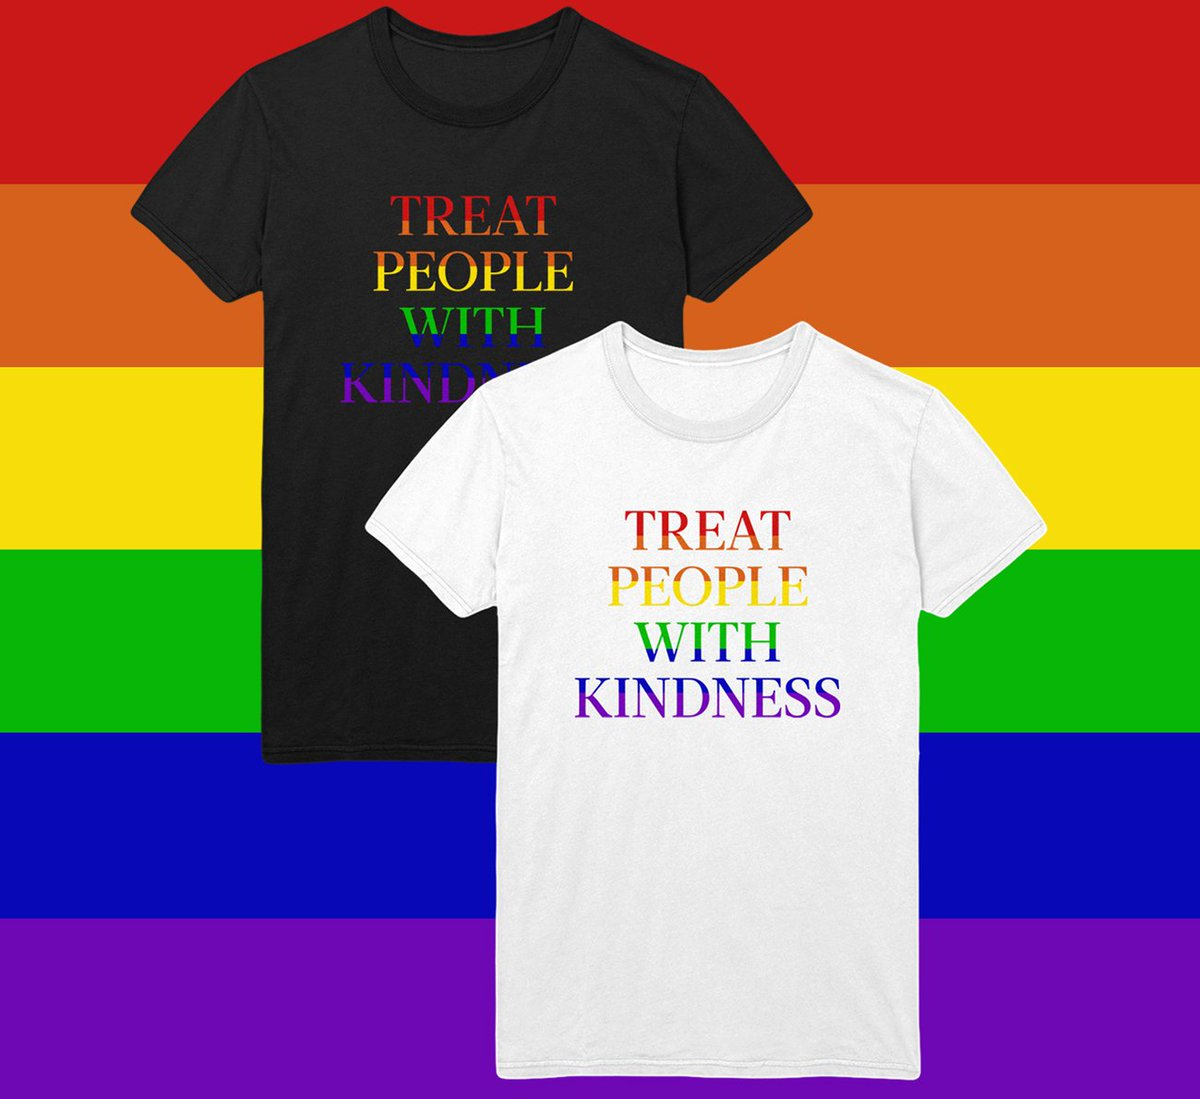 This Mom-to-Bes Rainbow T-Shirt Is Spreading a Touching Message of Hope